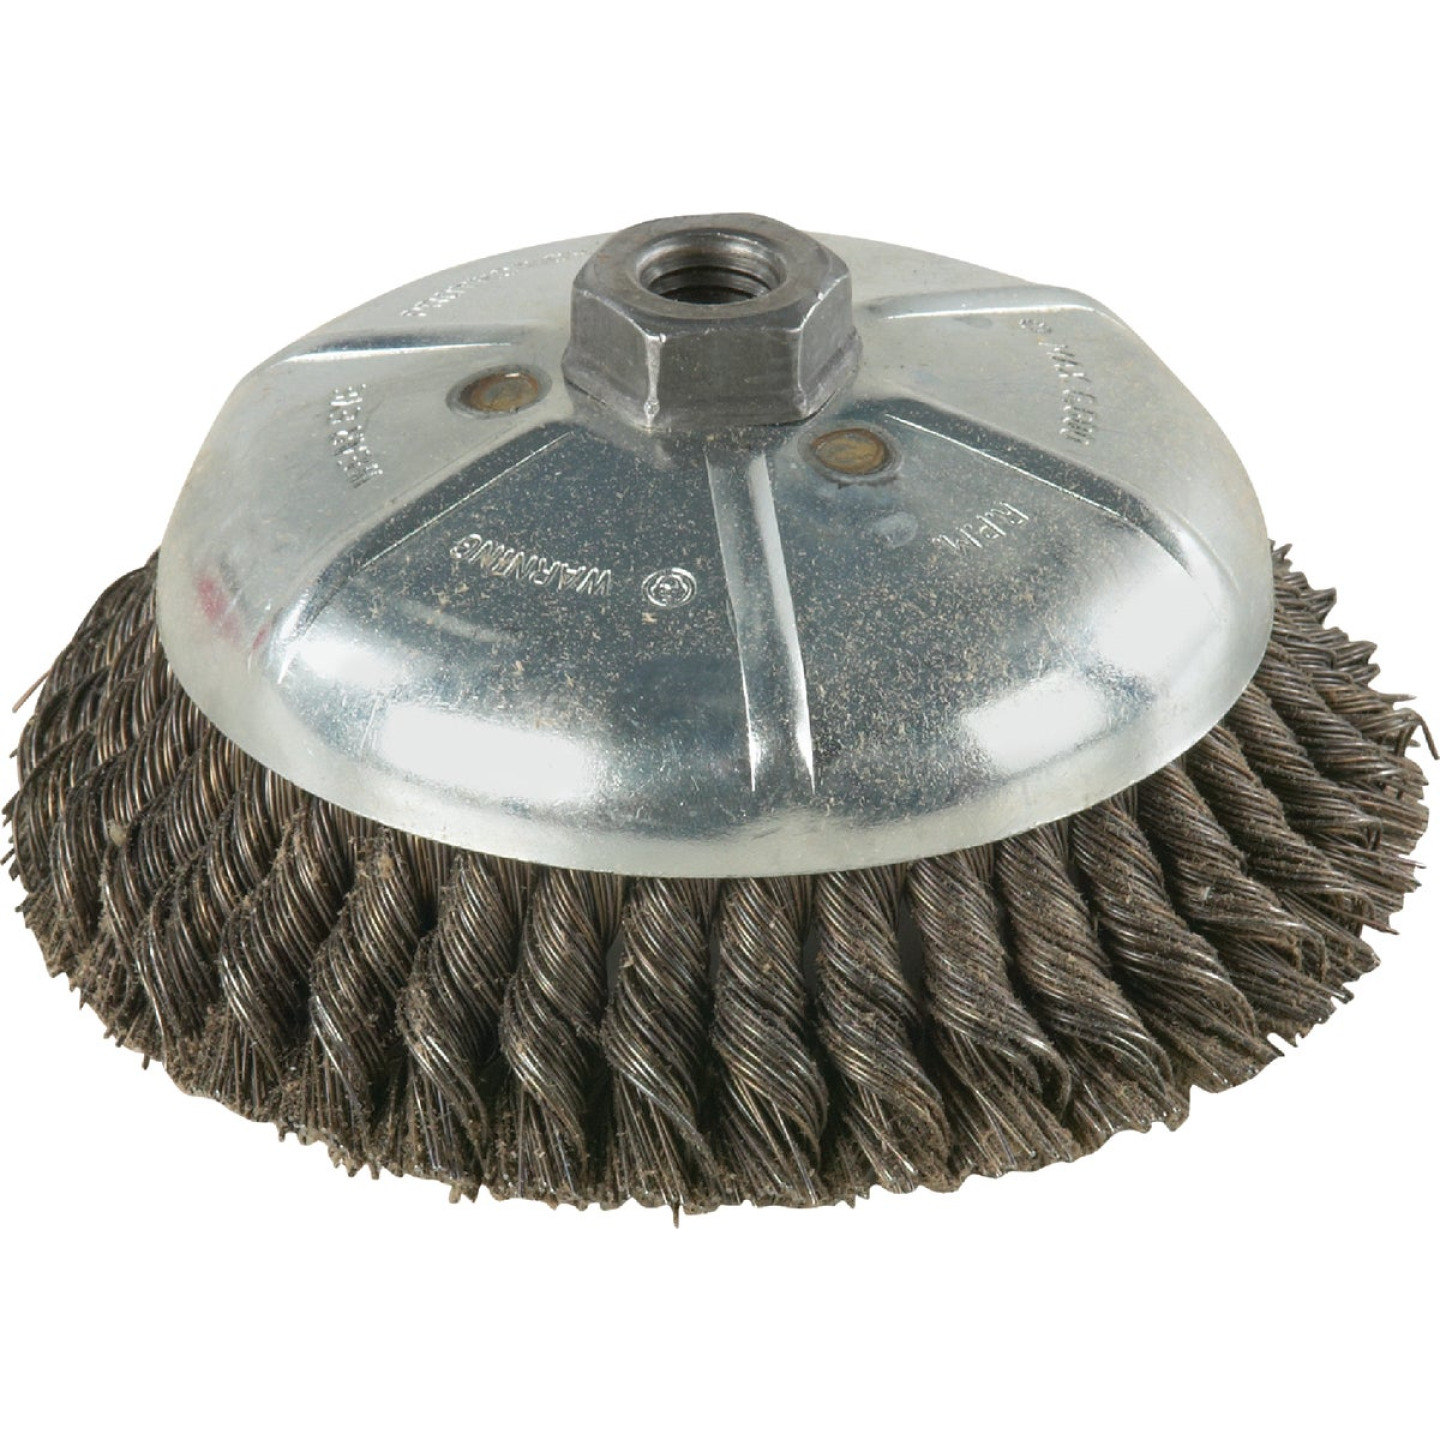 Weiler Vortec 6 In. Knotted 0.02 In. Angle Grinder Wire Brush Image 1